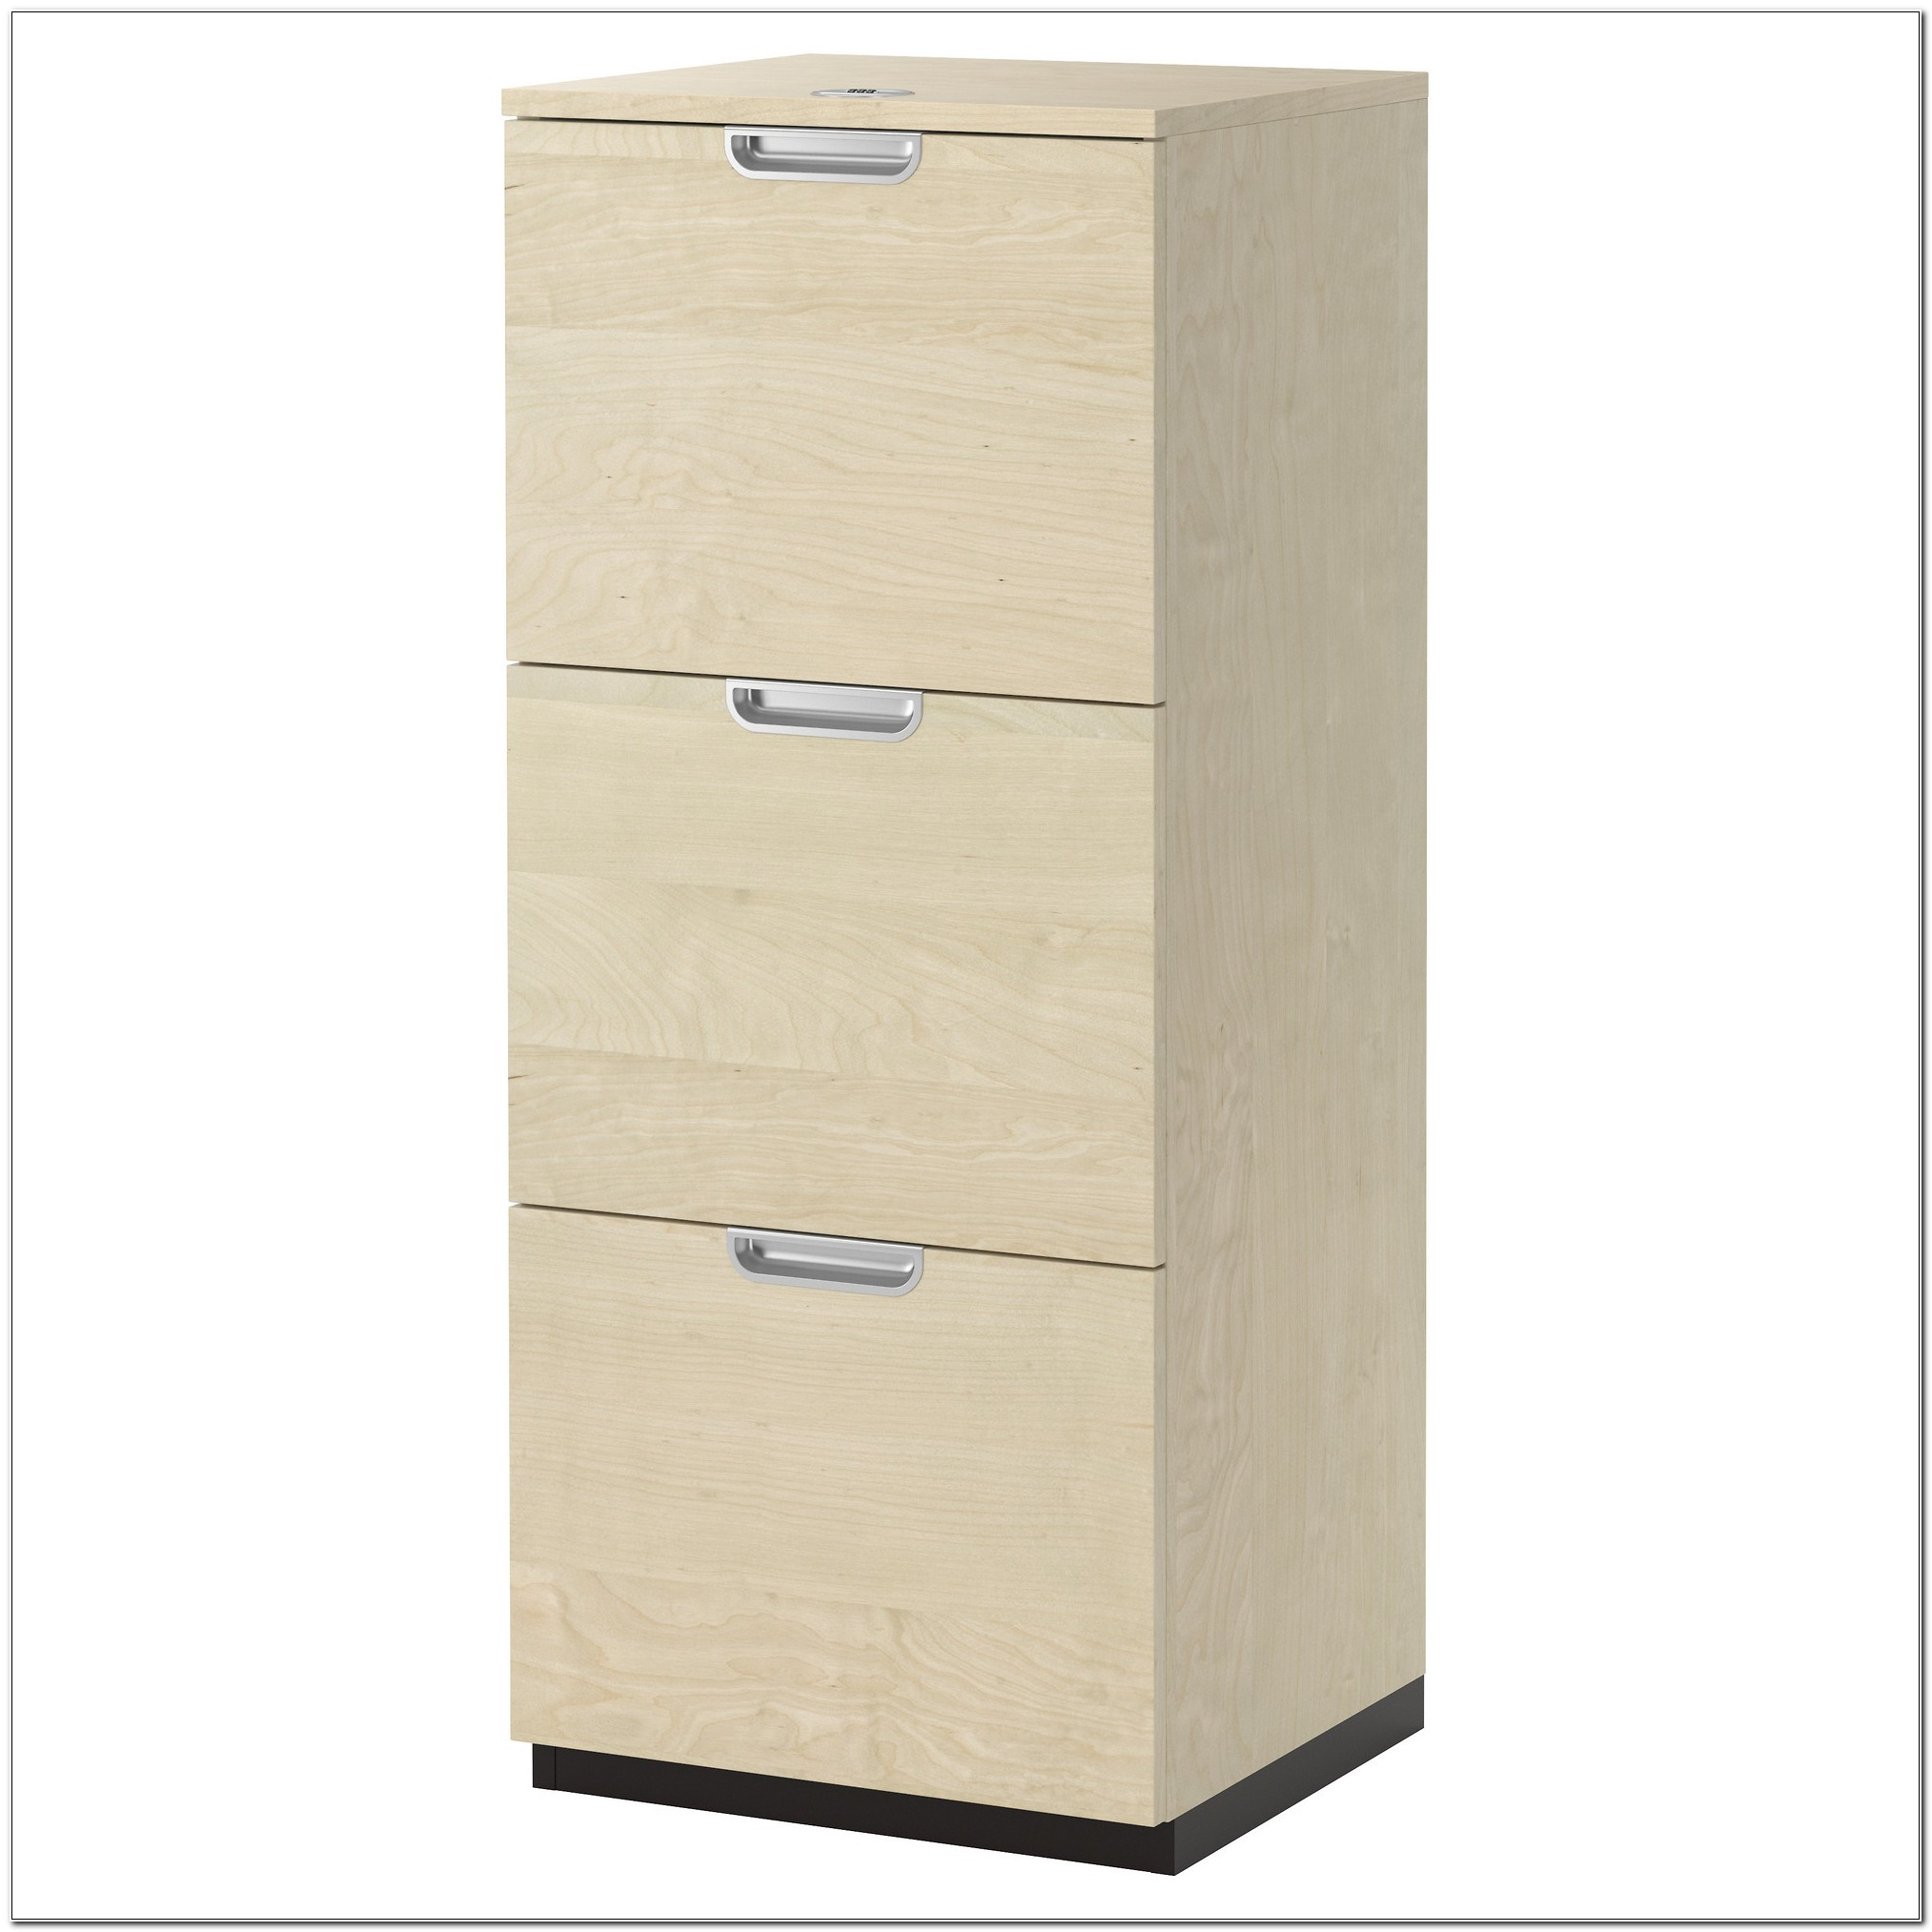 Ikea 2 Drawer Wood File Cabinet